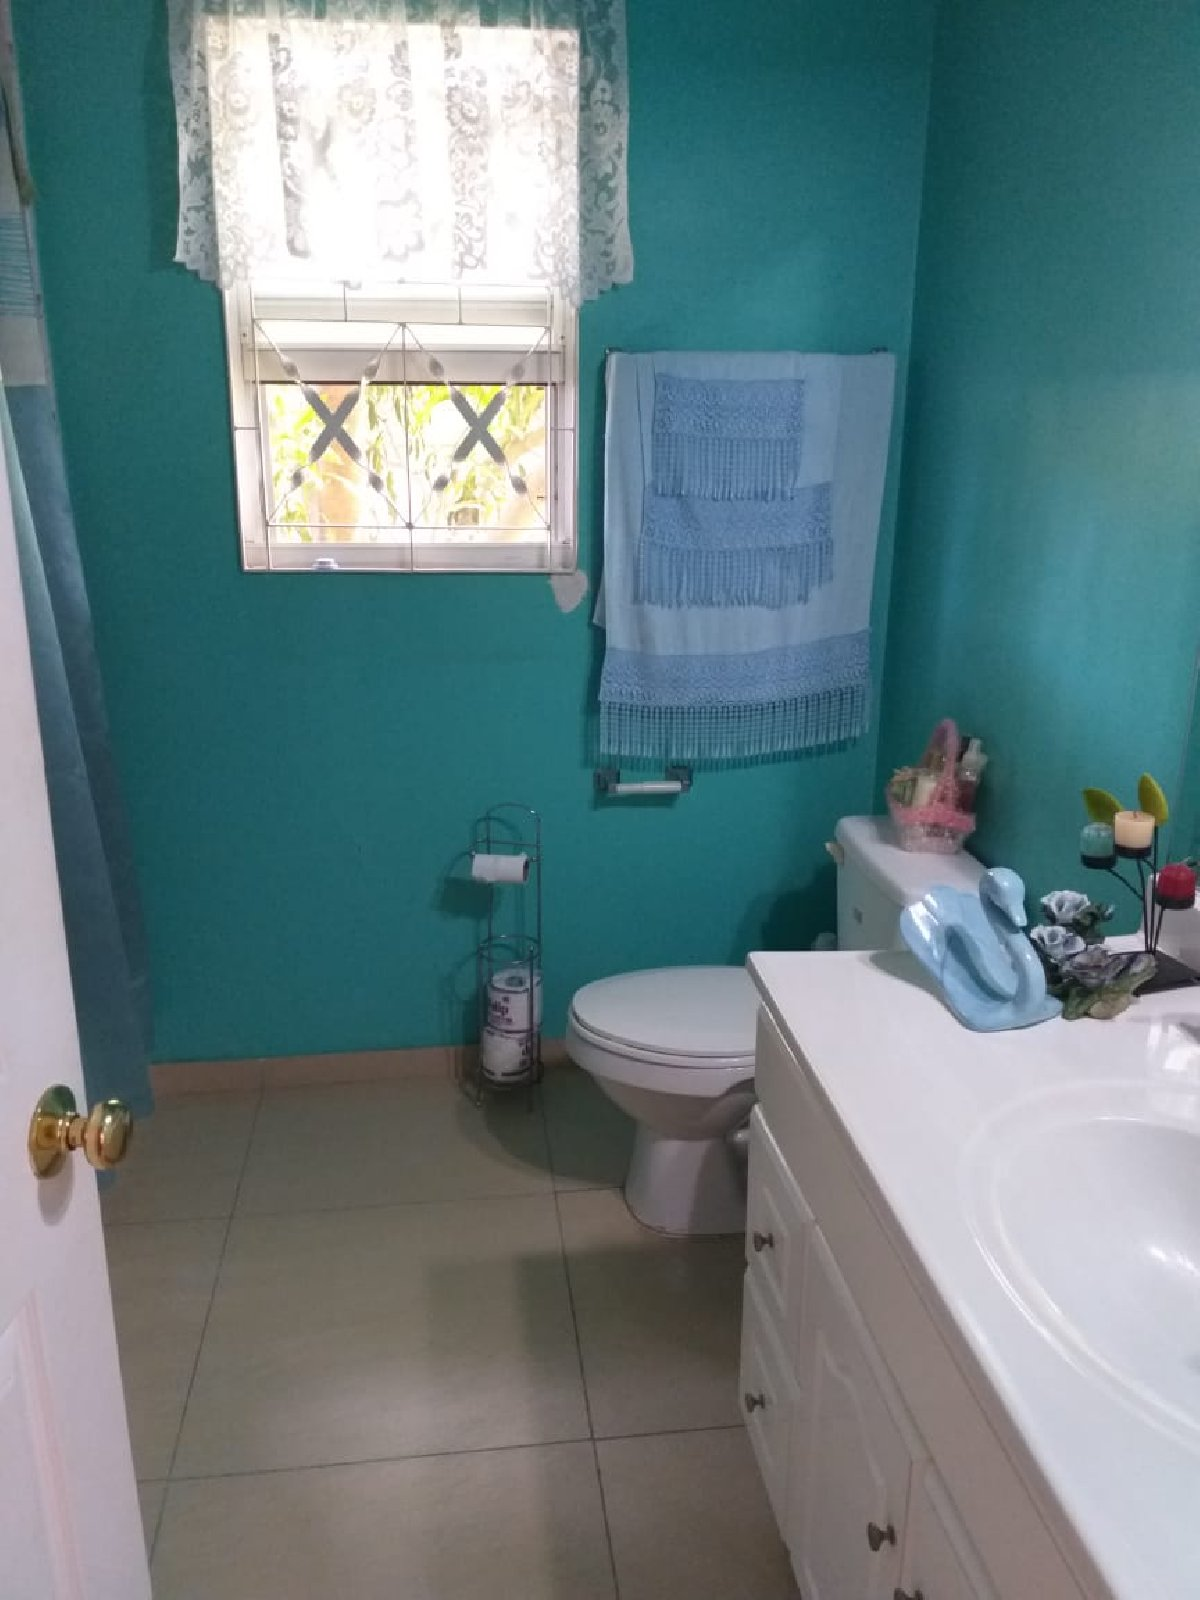 One Bedroom For Rent: Semi-furnished 1 Bedroom For Rent, Single Person In El